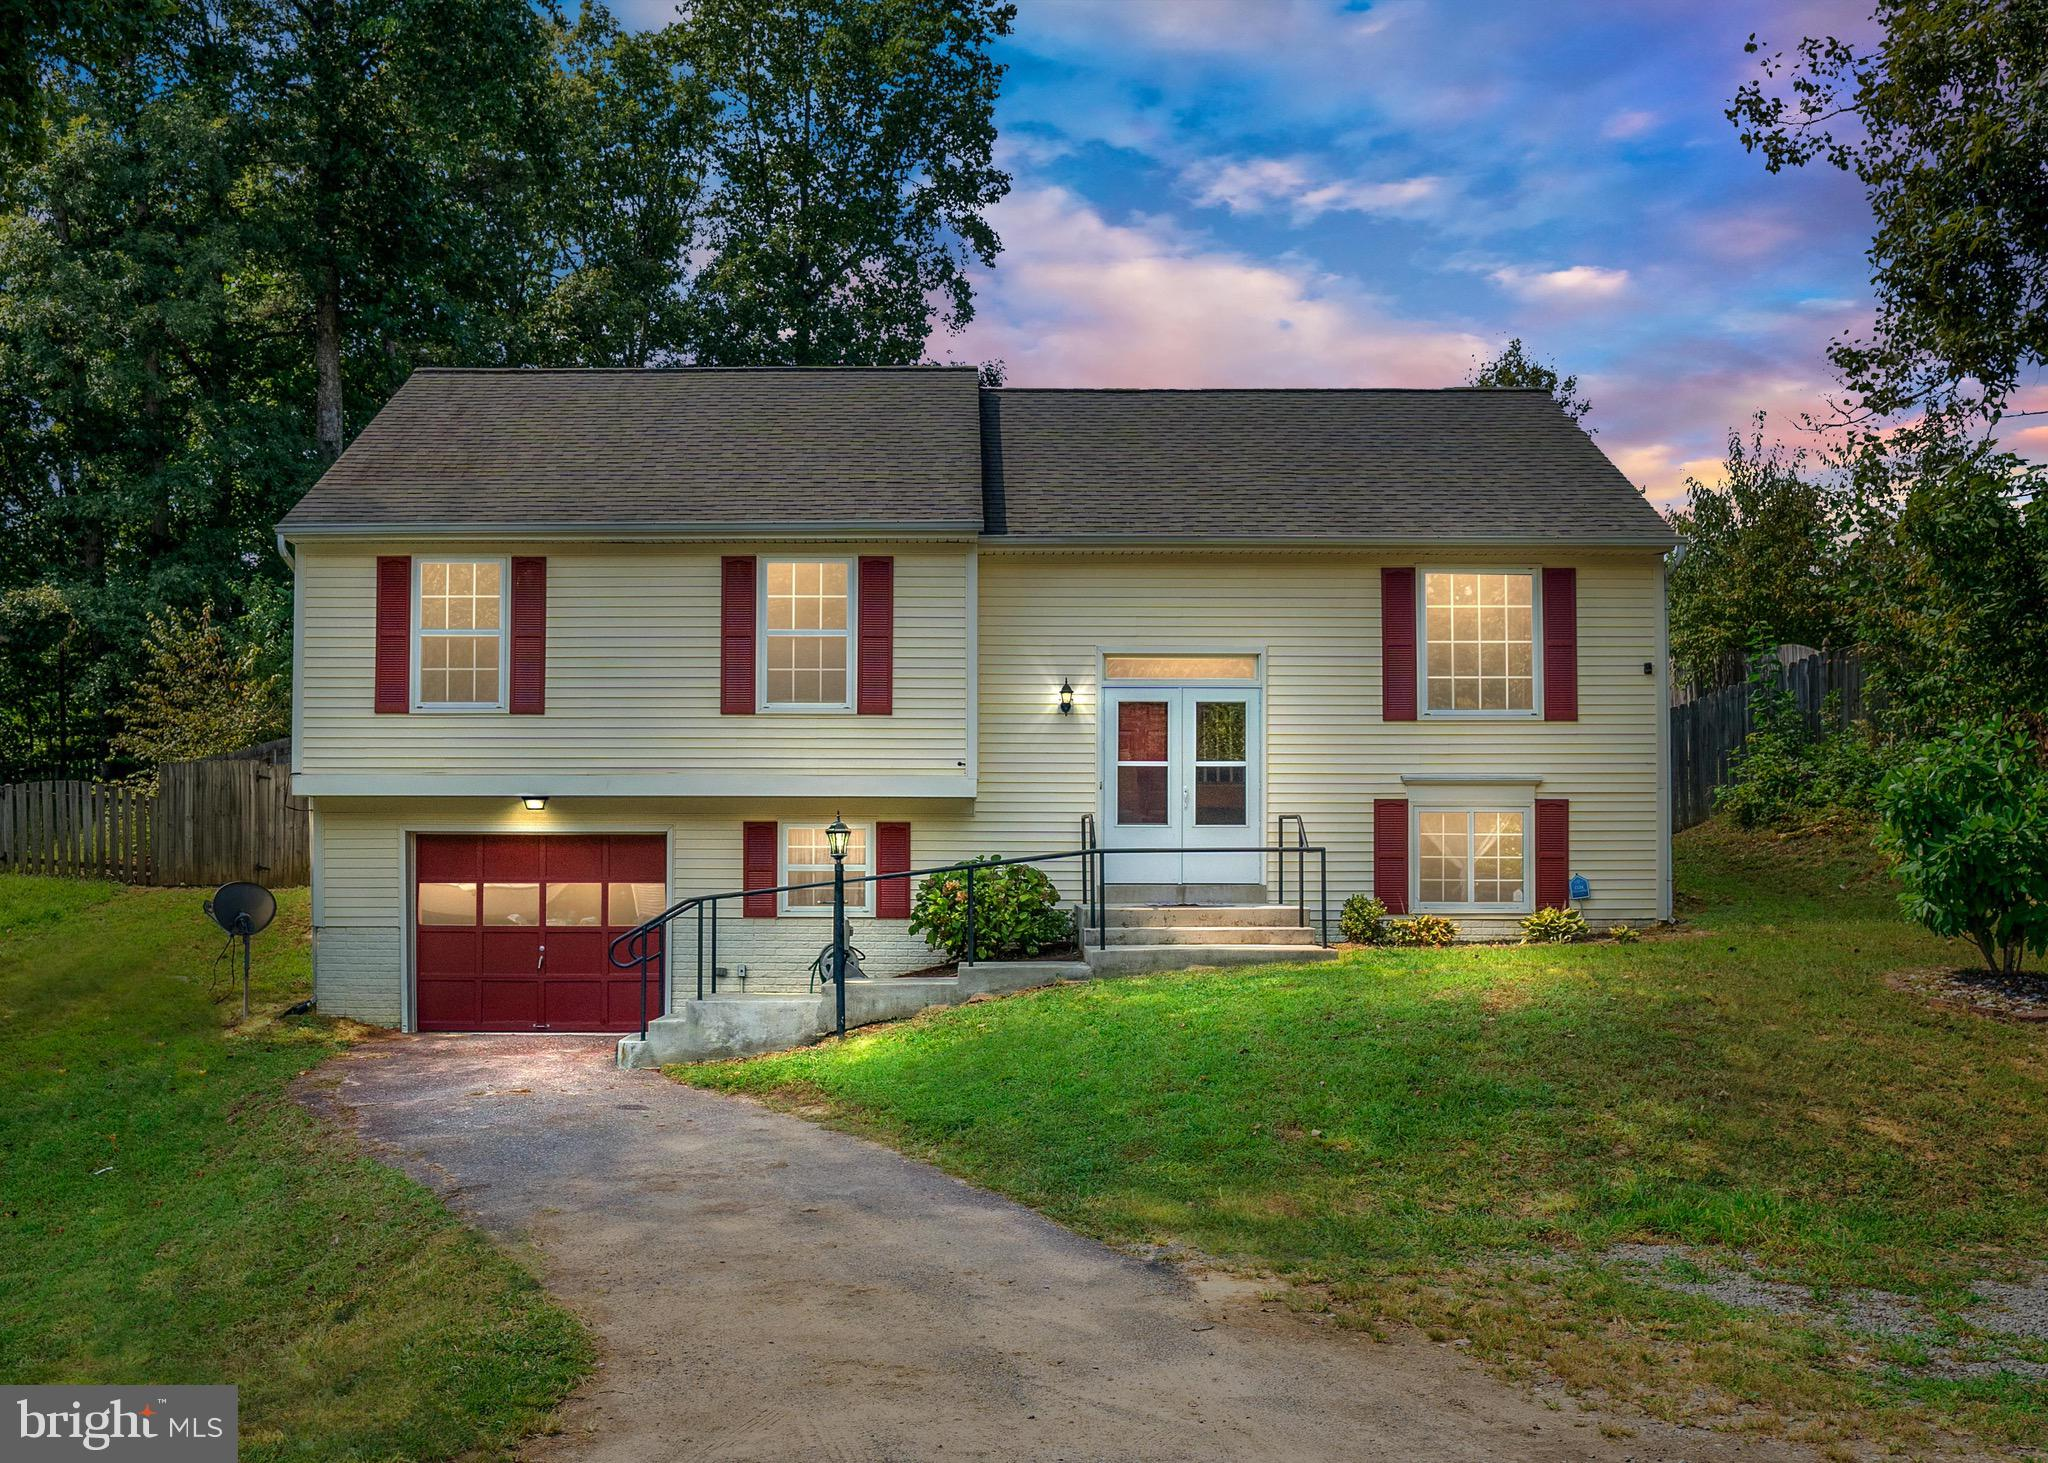 You're going to love this 4 bedroom, 3 bathroom home in South Stafford County. This home features a large eat-in kitchen, stainless steel appliances, enormous Master Bedroom, and a fully fenced backyard in a great location. There is a Bonus Room in the basement that could be used as another bedroom (NTC) or office. Minutes to the VRE, Route 1, I-95, and Stafford Hospital. Welcome Home.